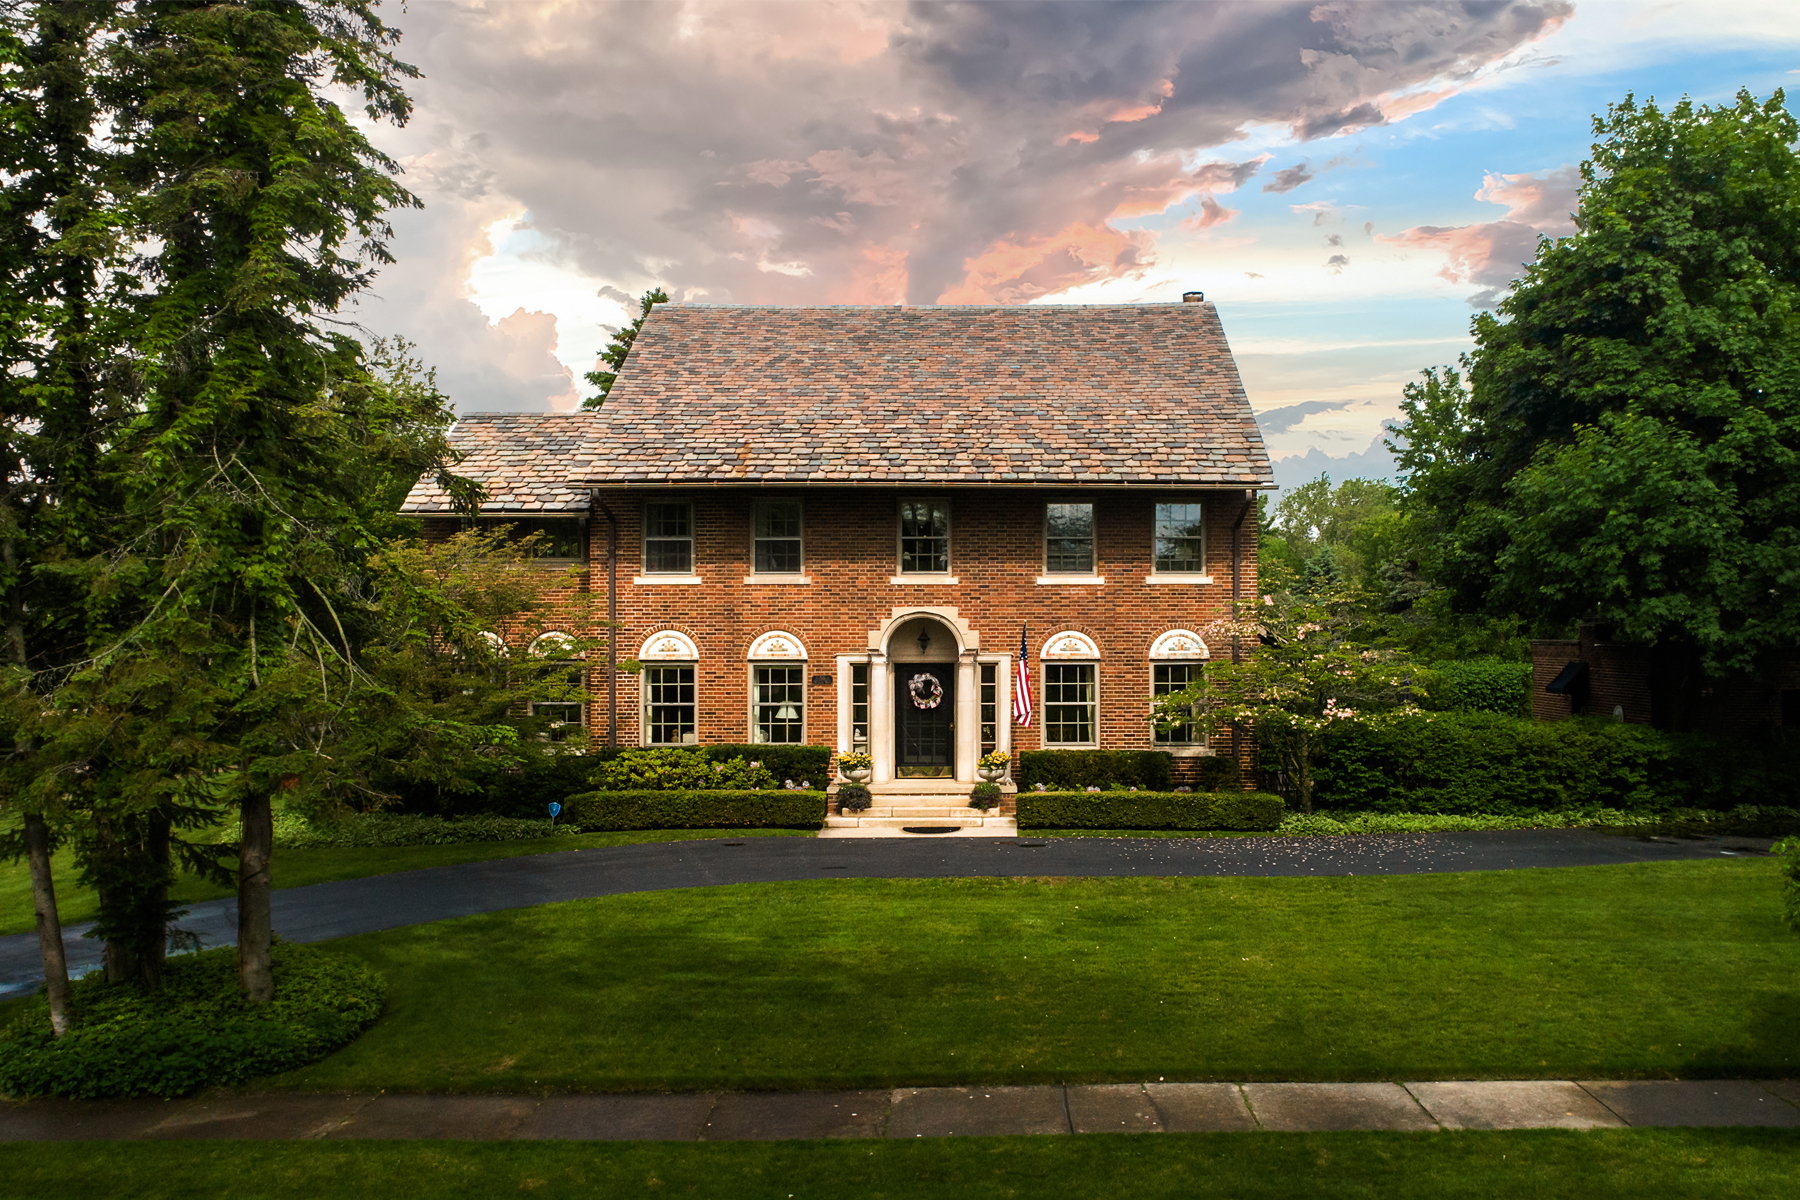 Single Family Homes for Sale at Grosse Pointe 50 Lochmoor Grosse Pointe Shores, Michigan 48236 United States